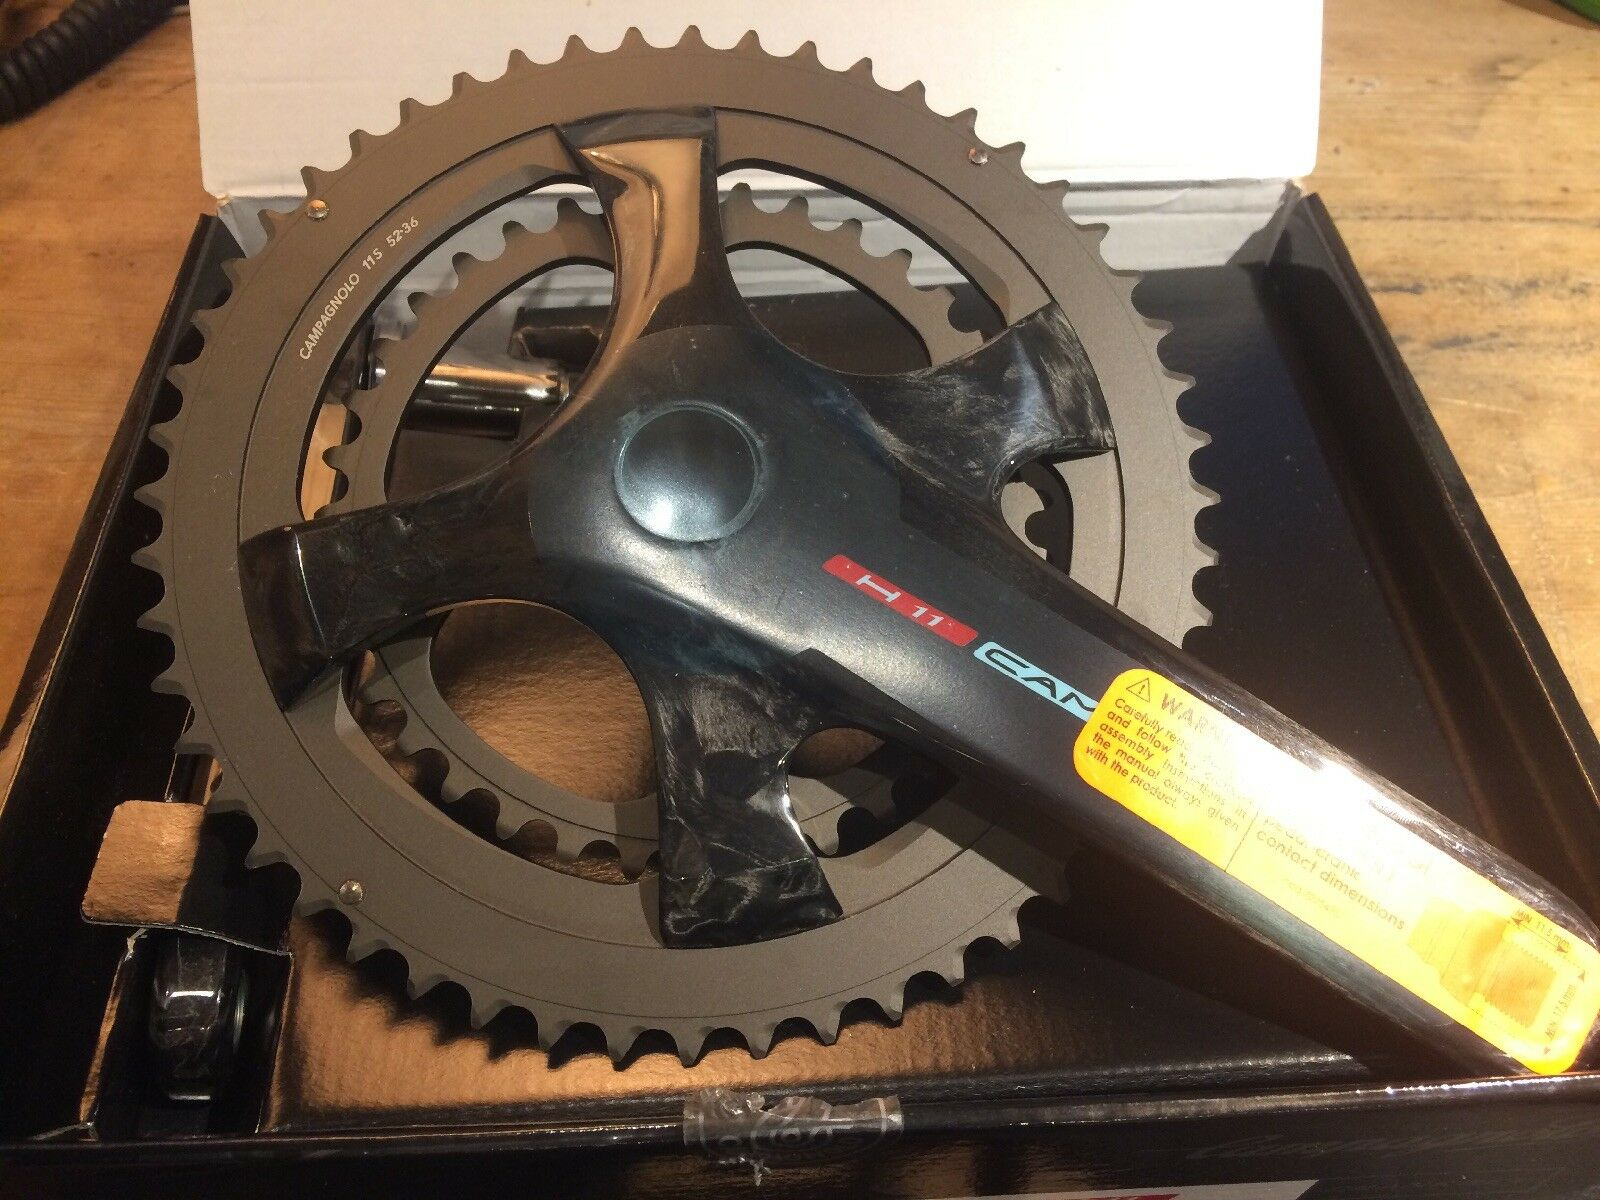 Campagnolo H11 Ultra Torque Road Bike Chainset   172.5mm Crank Length   52 36T